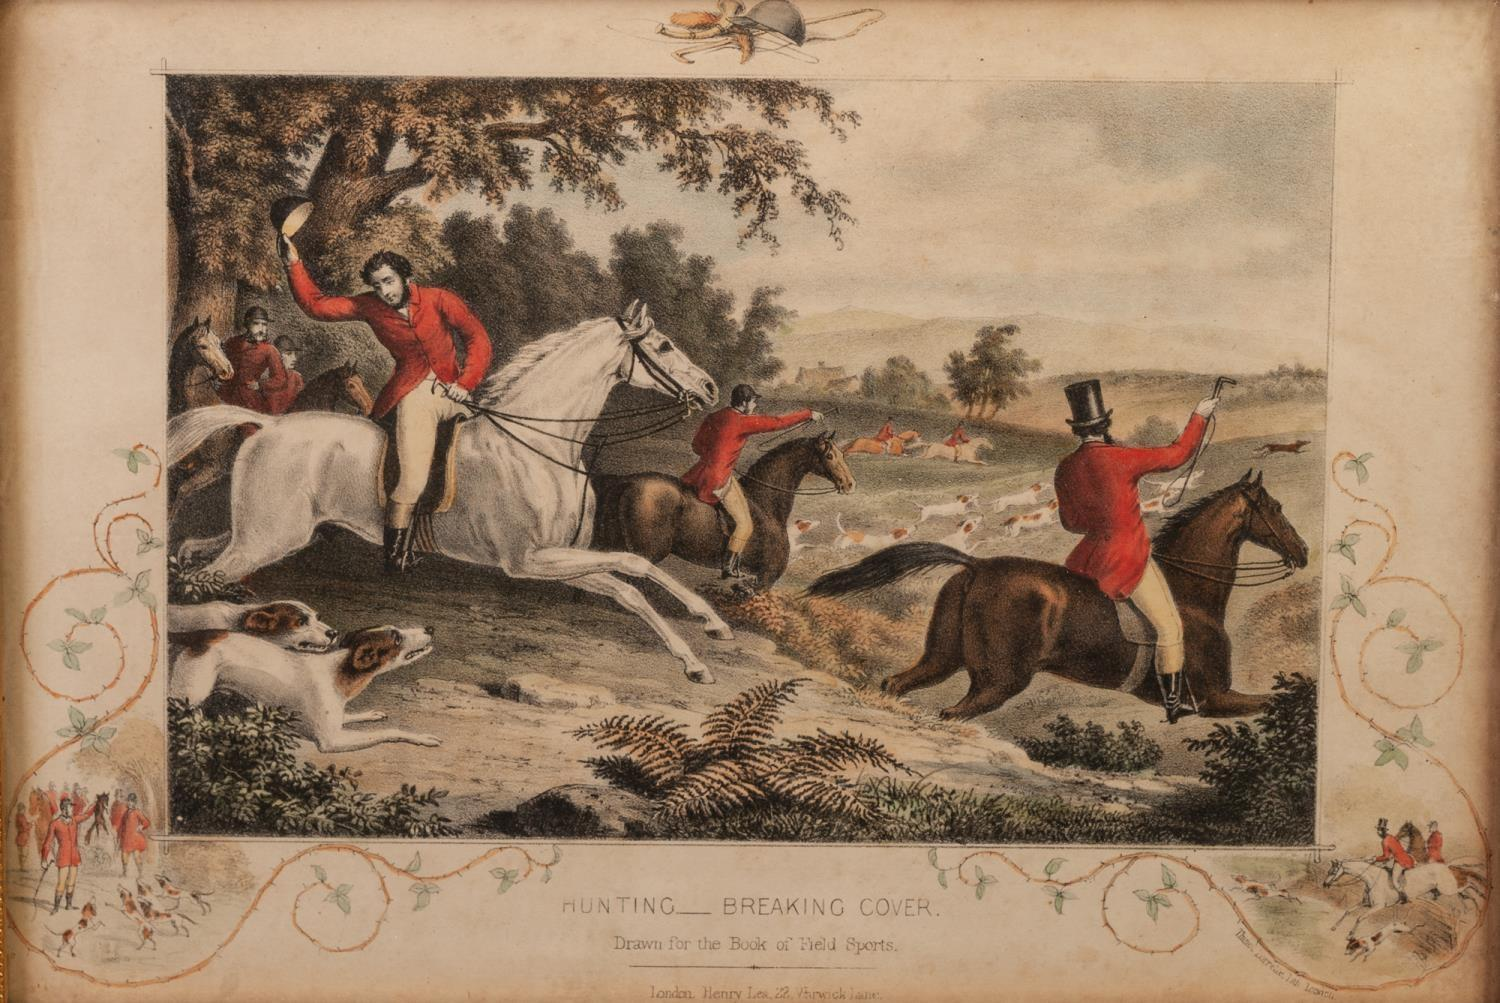 Lot 387 - FROM THE ?BOOK OF FIELD SPORTS? THREE LATE NINETEENTH CENTURY COLOURED LITHOGRAPHS ?A Sharp Look-